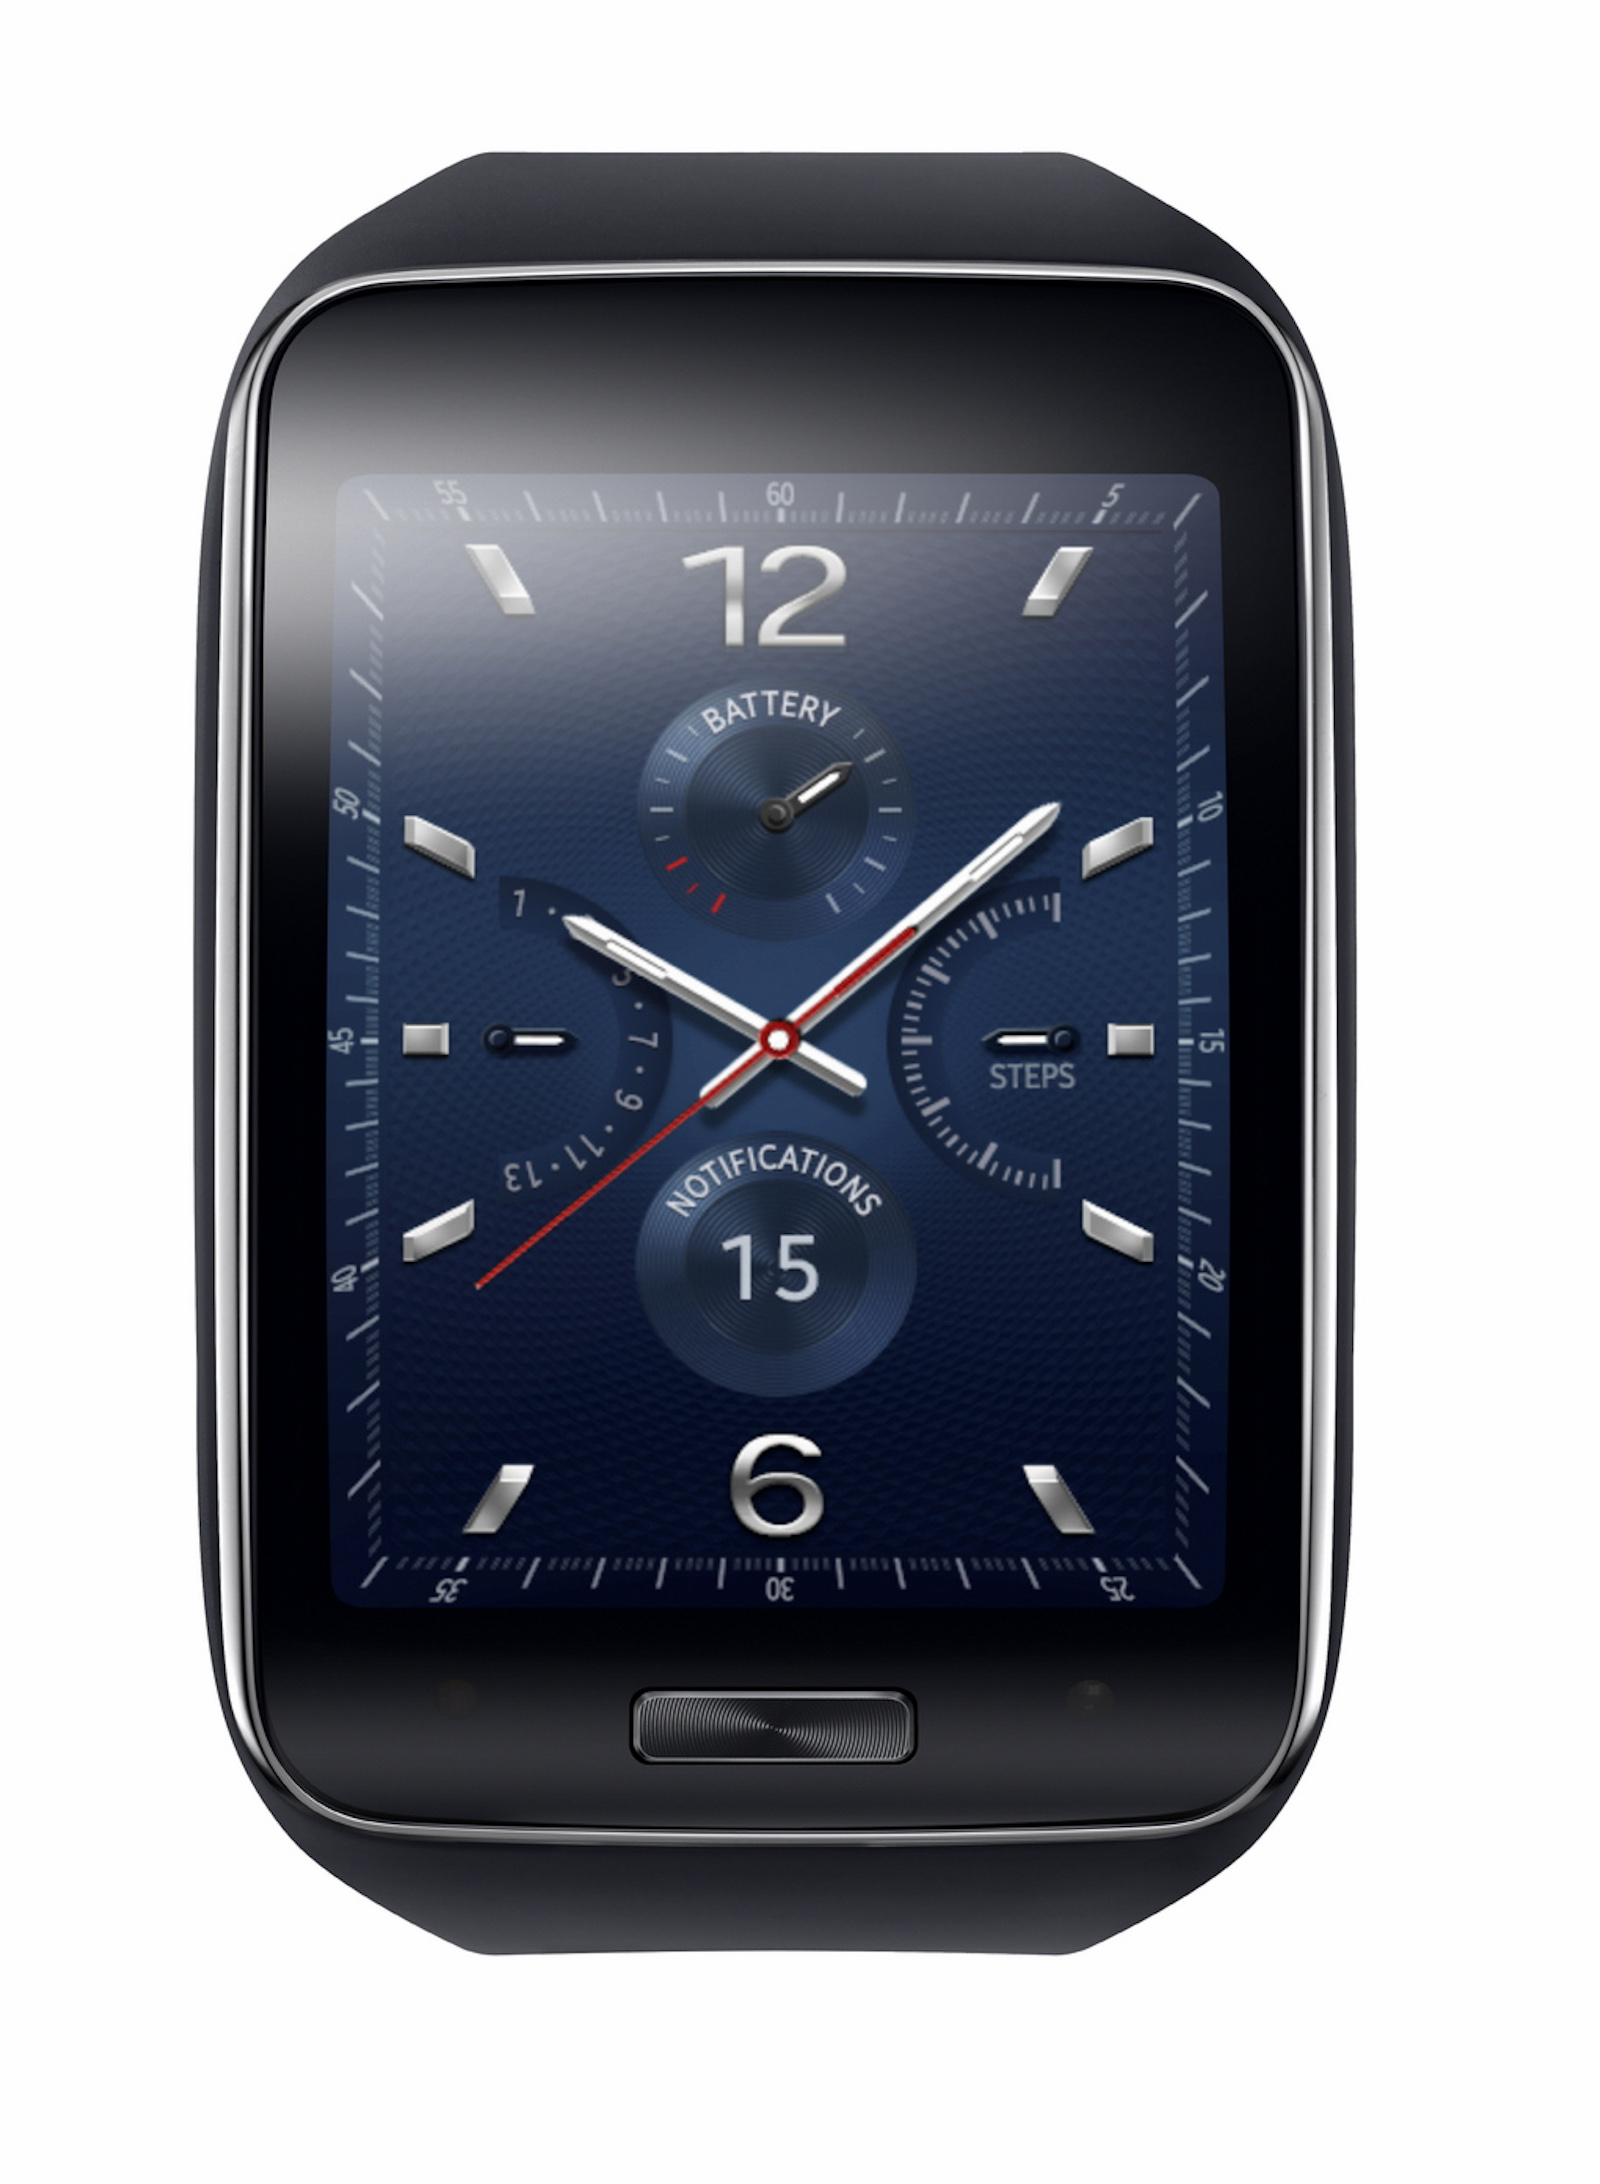 curved display sim equipped samsung gear s made official. Black Bedroom Furniture Sets. Home Design Ideas